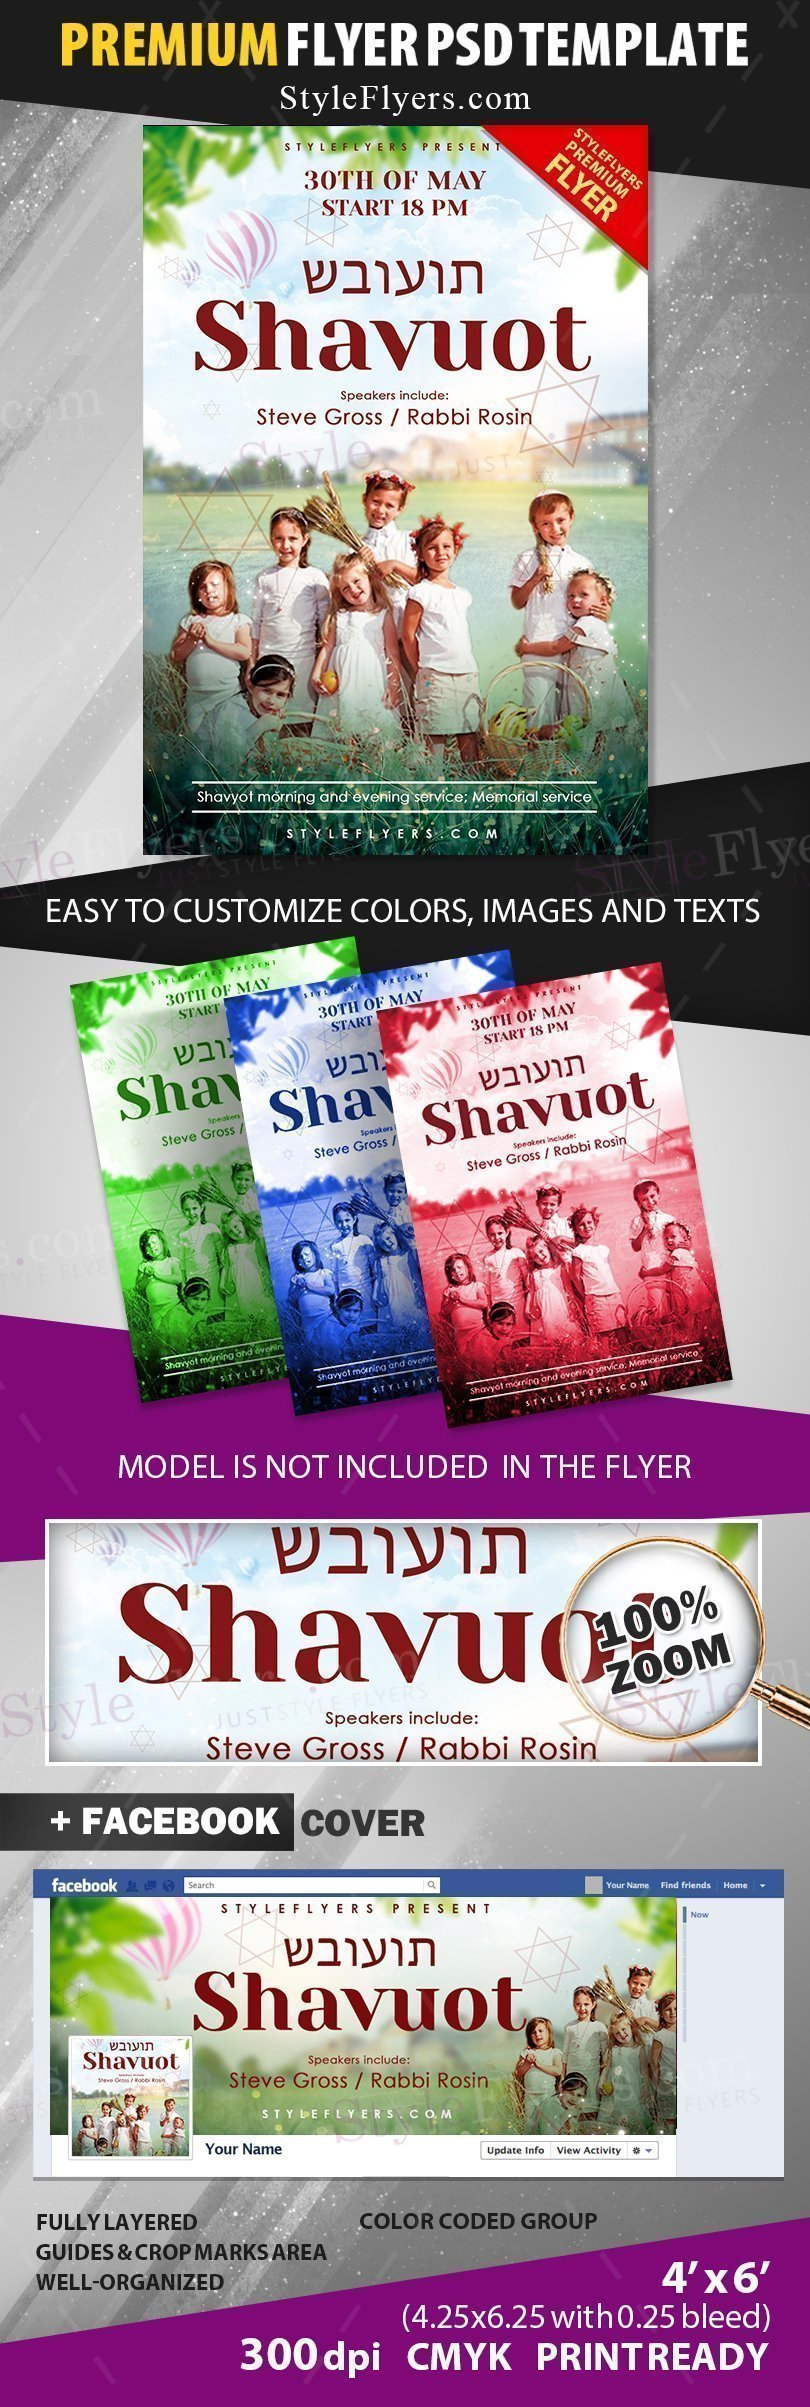 preview_Shavuot_psd_flyer